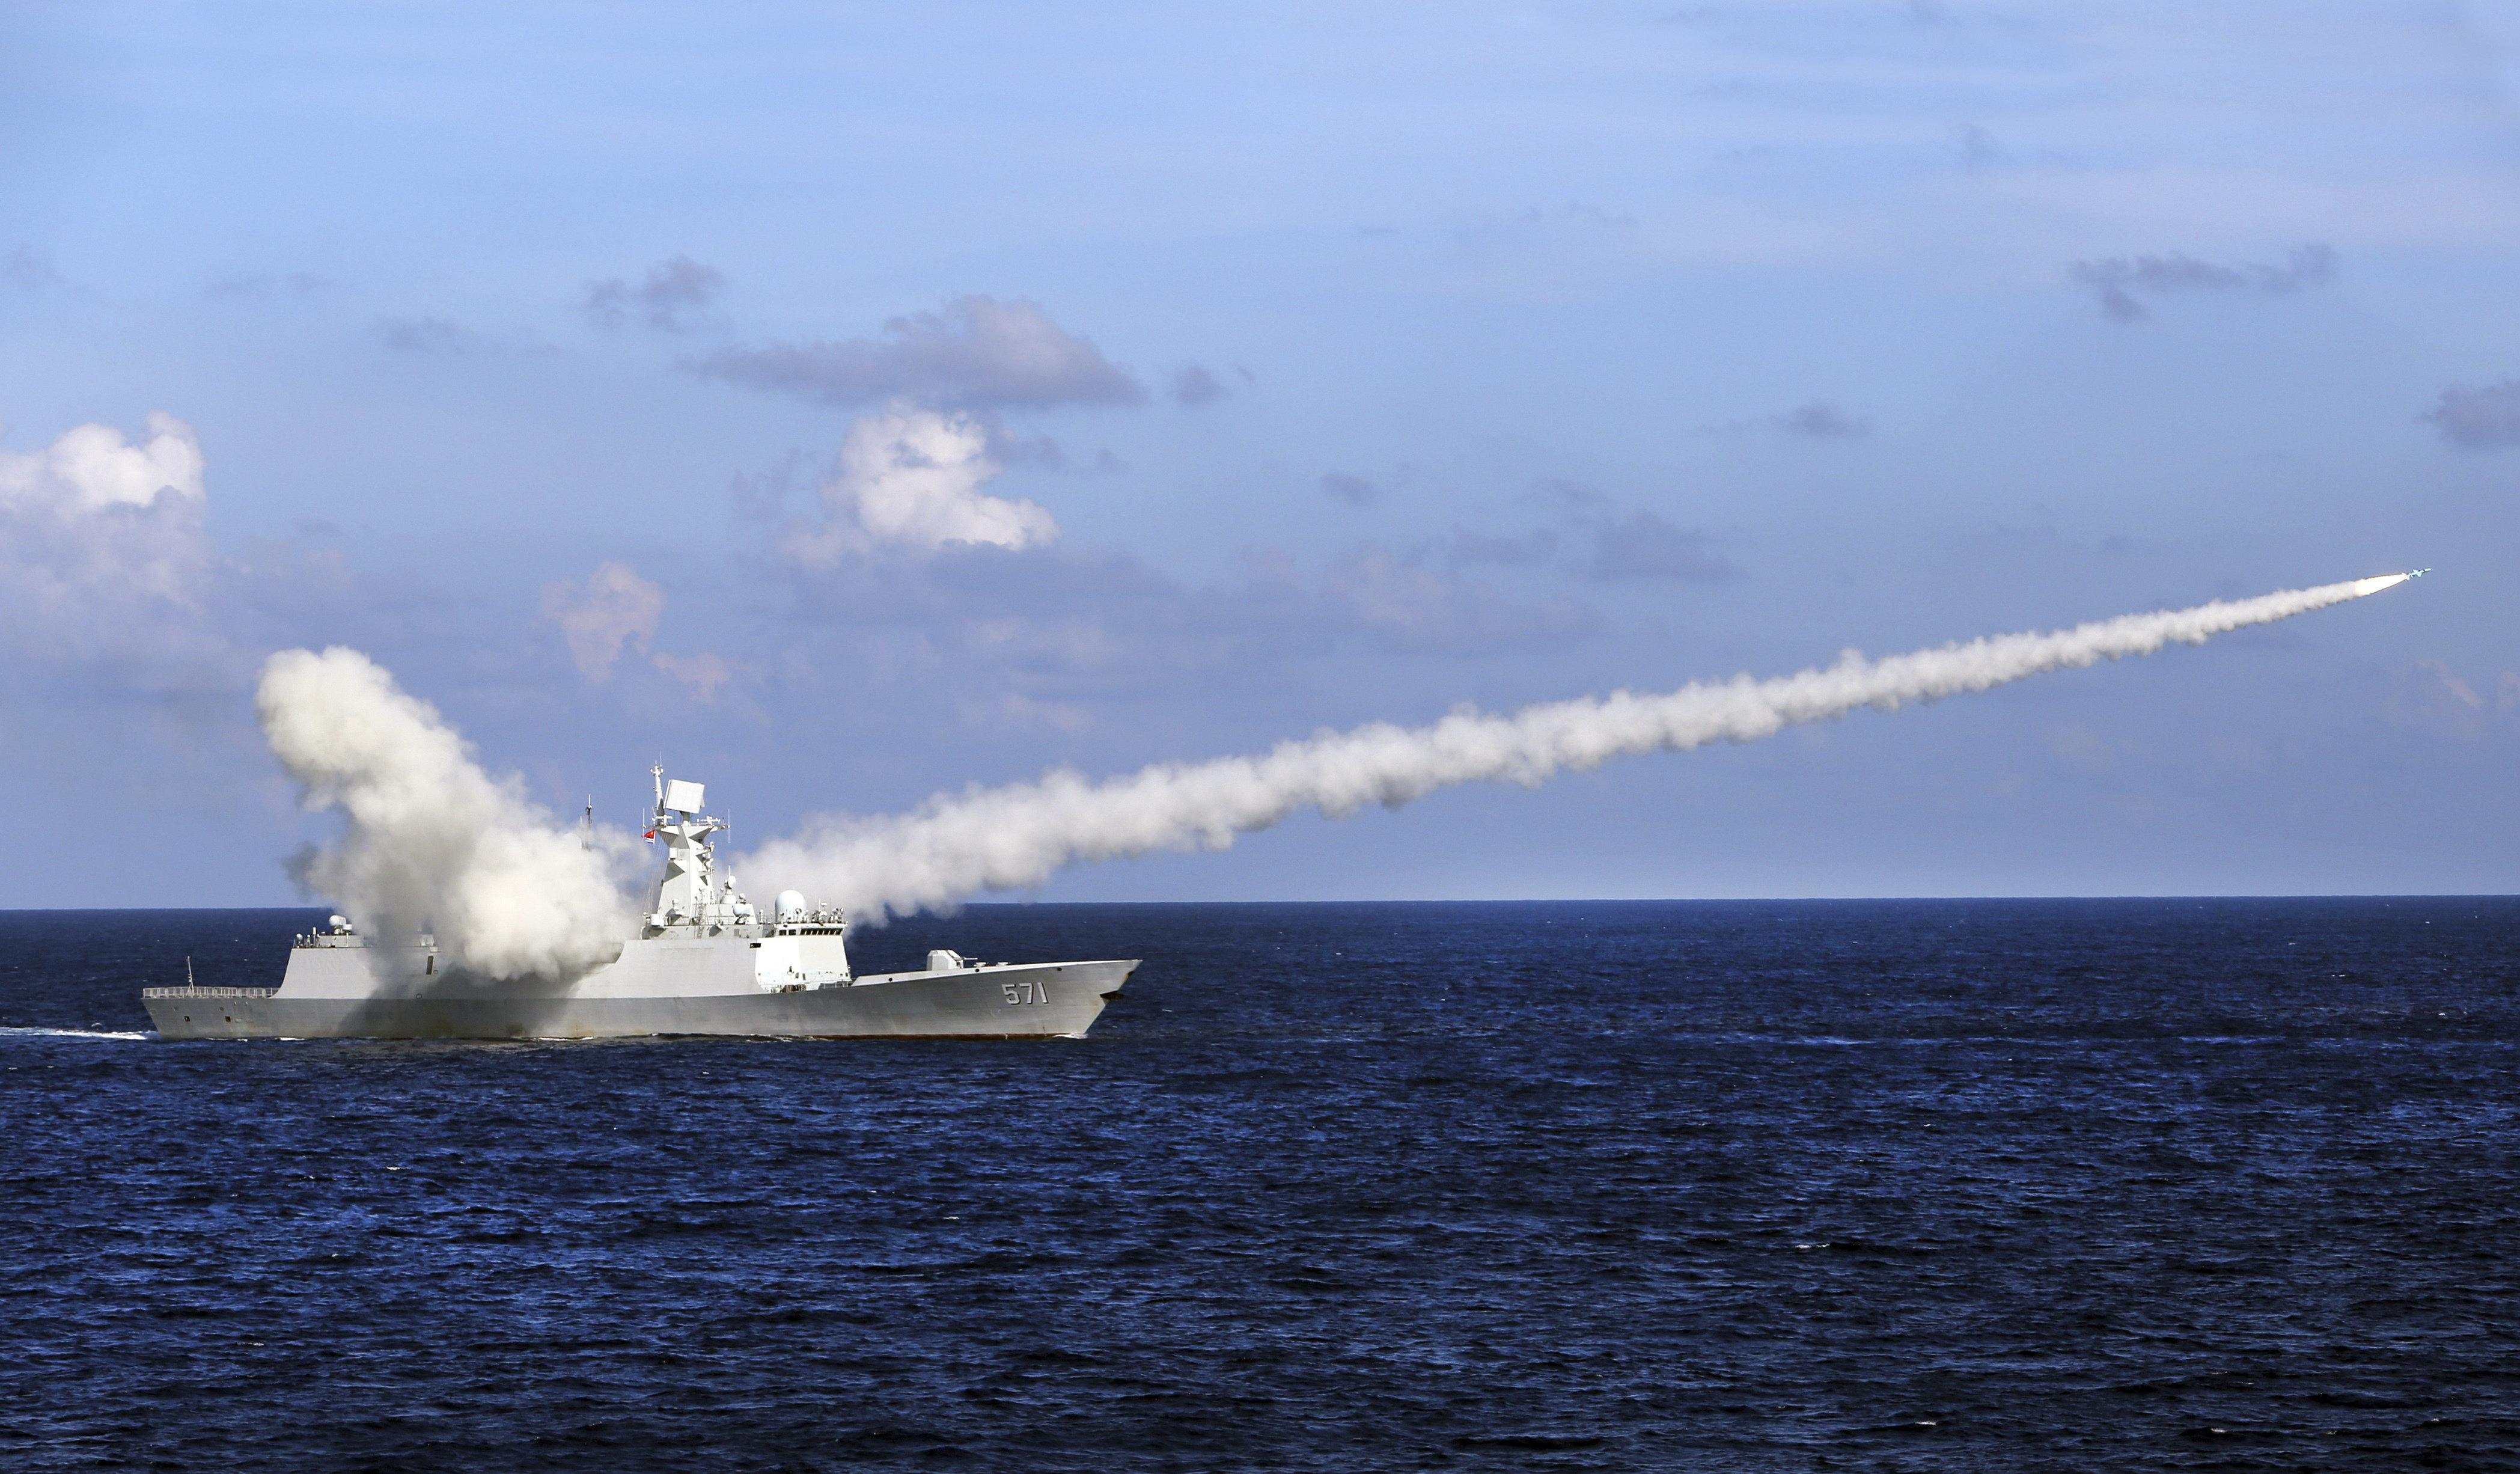 Chinese missile frigate Yuncheng launches an anti-ship missile during a military exercise (File)